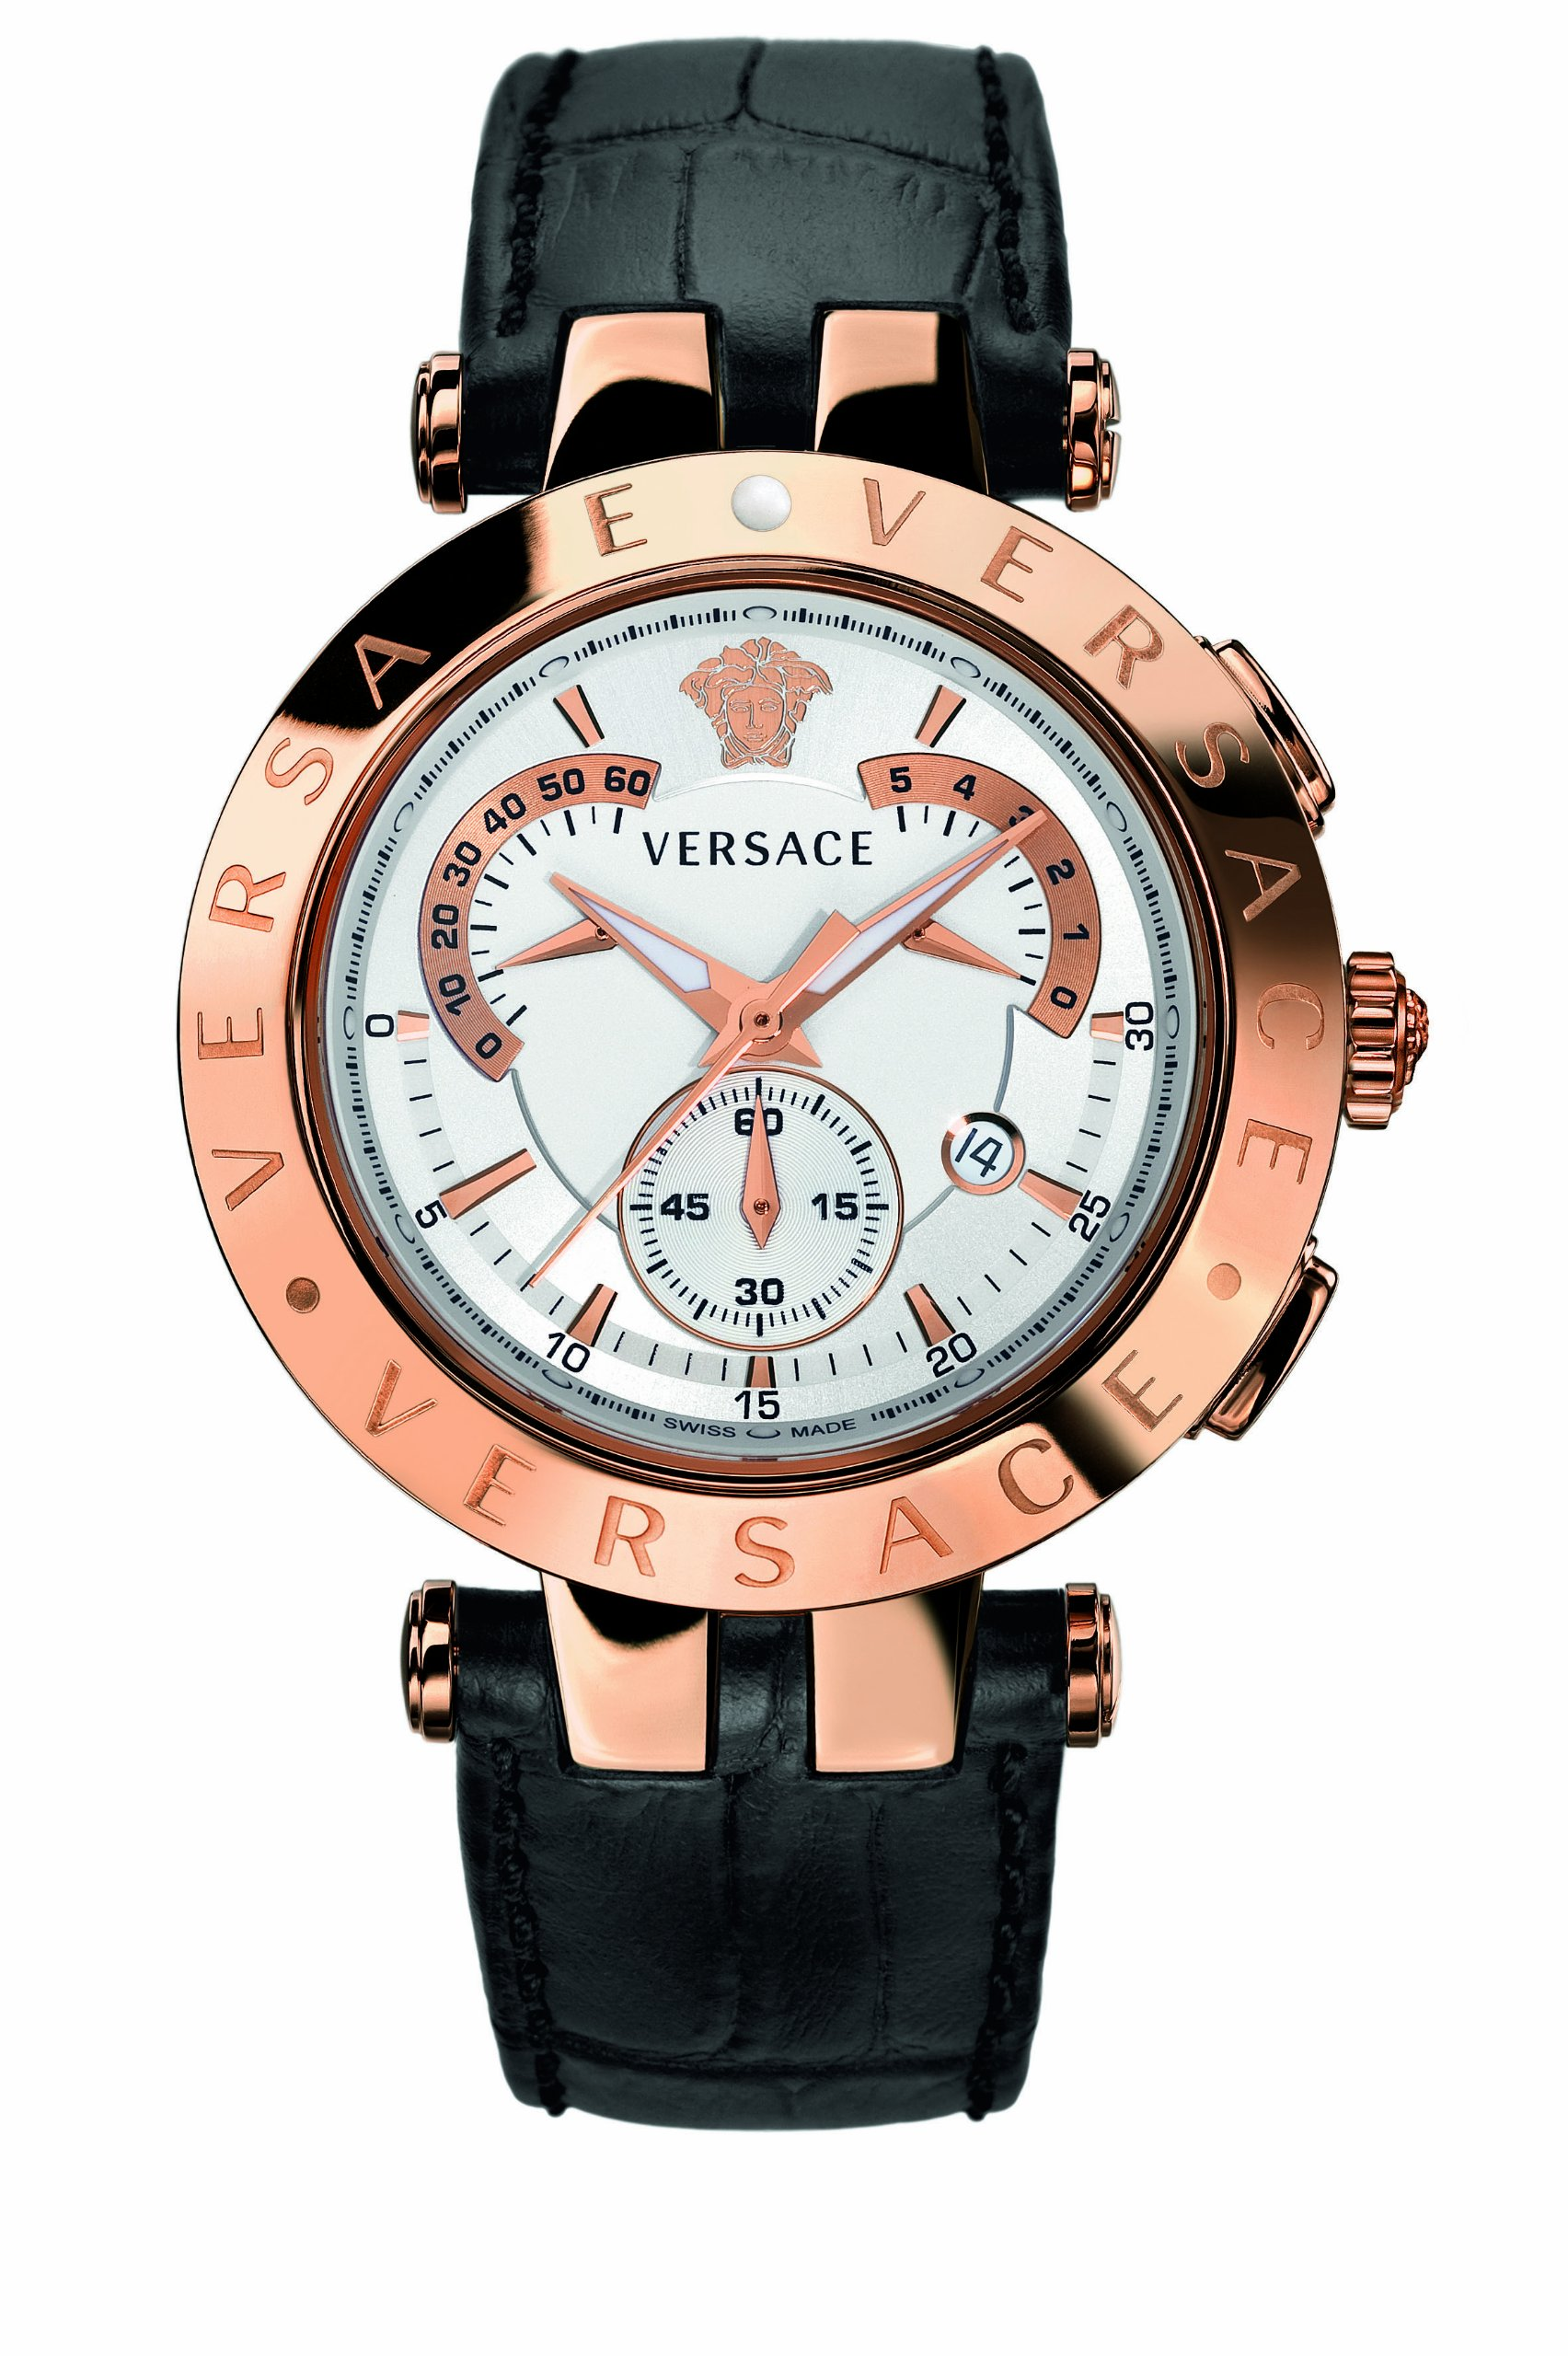 Versace Men's 23C80D002 S009 ''V-Race'' Rose Gold-Plated Watch with Black Leather Band by Versace (Image #2)